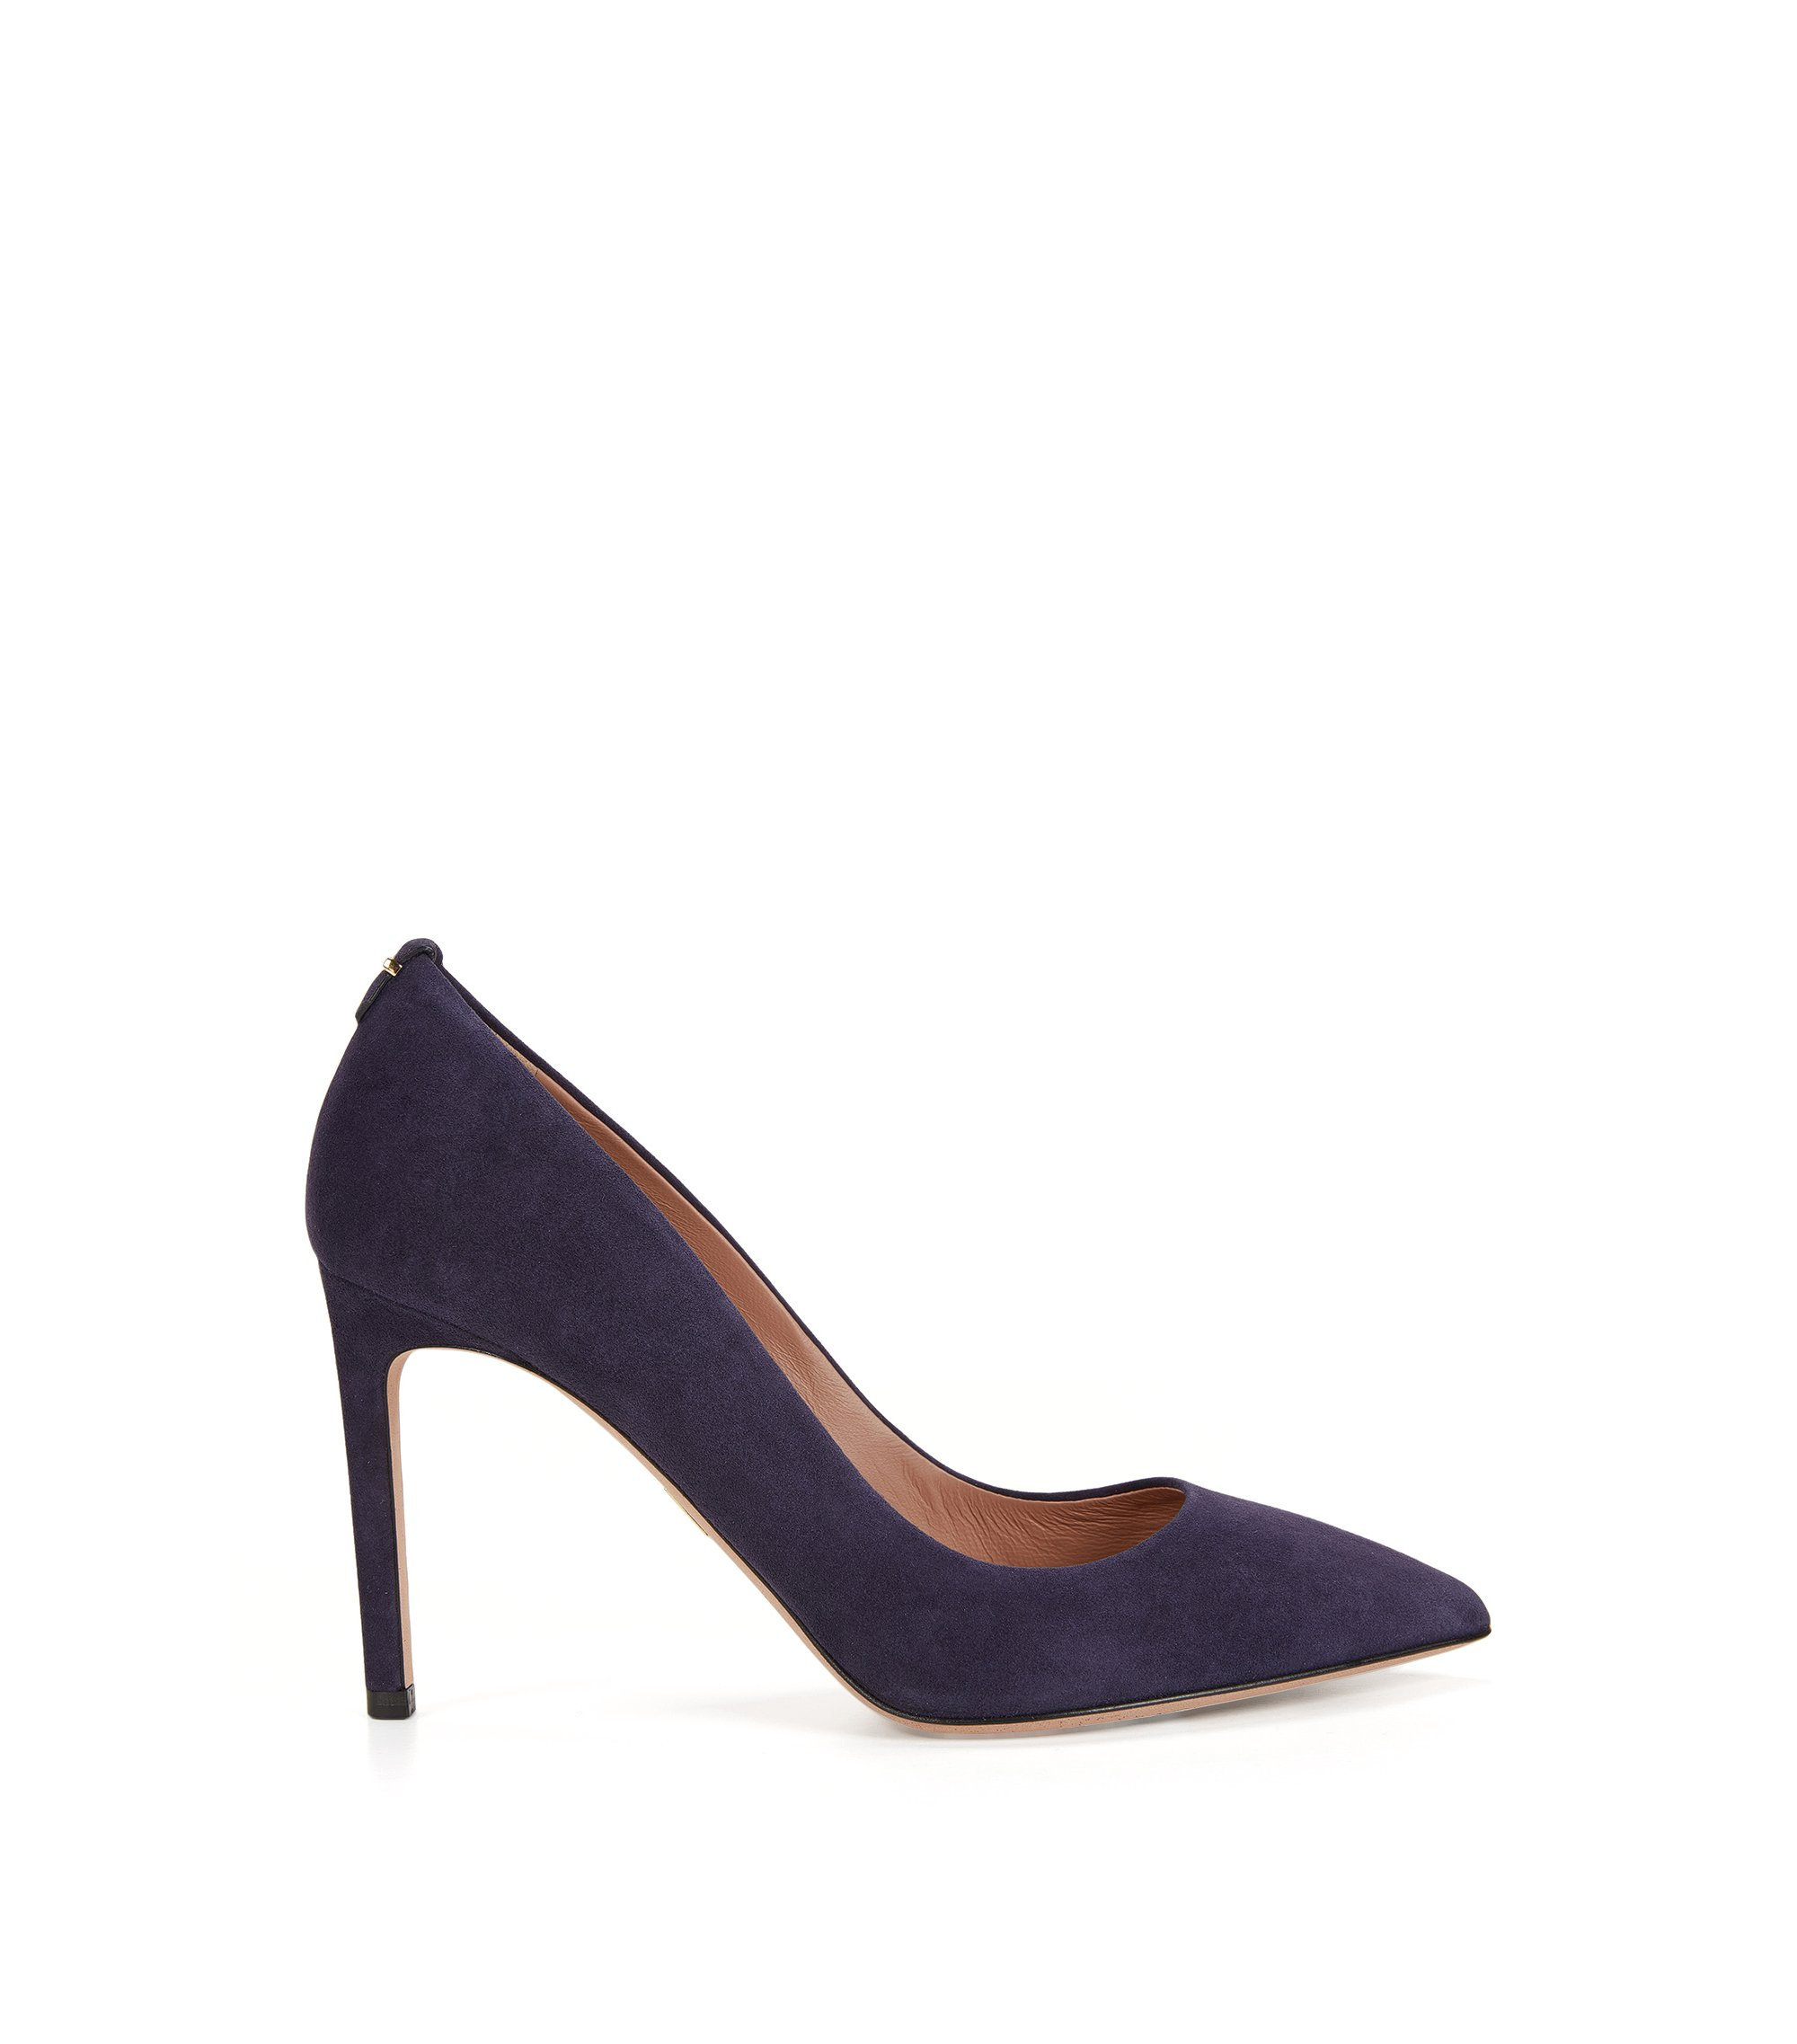 BOSS Luxury Staple pumps in Italian suede, Dark Purple